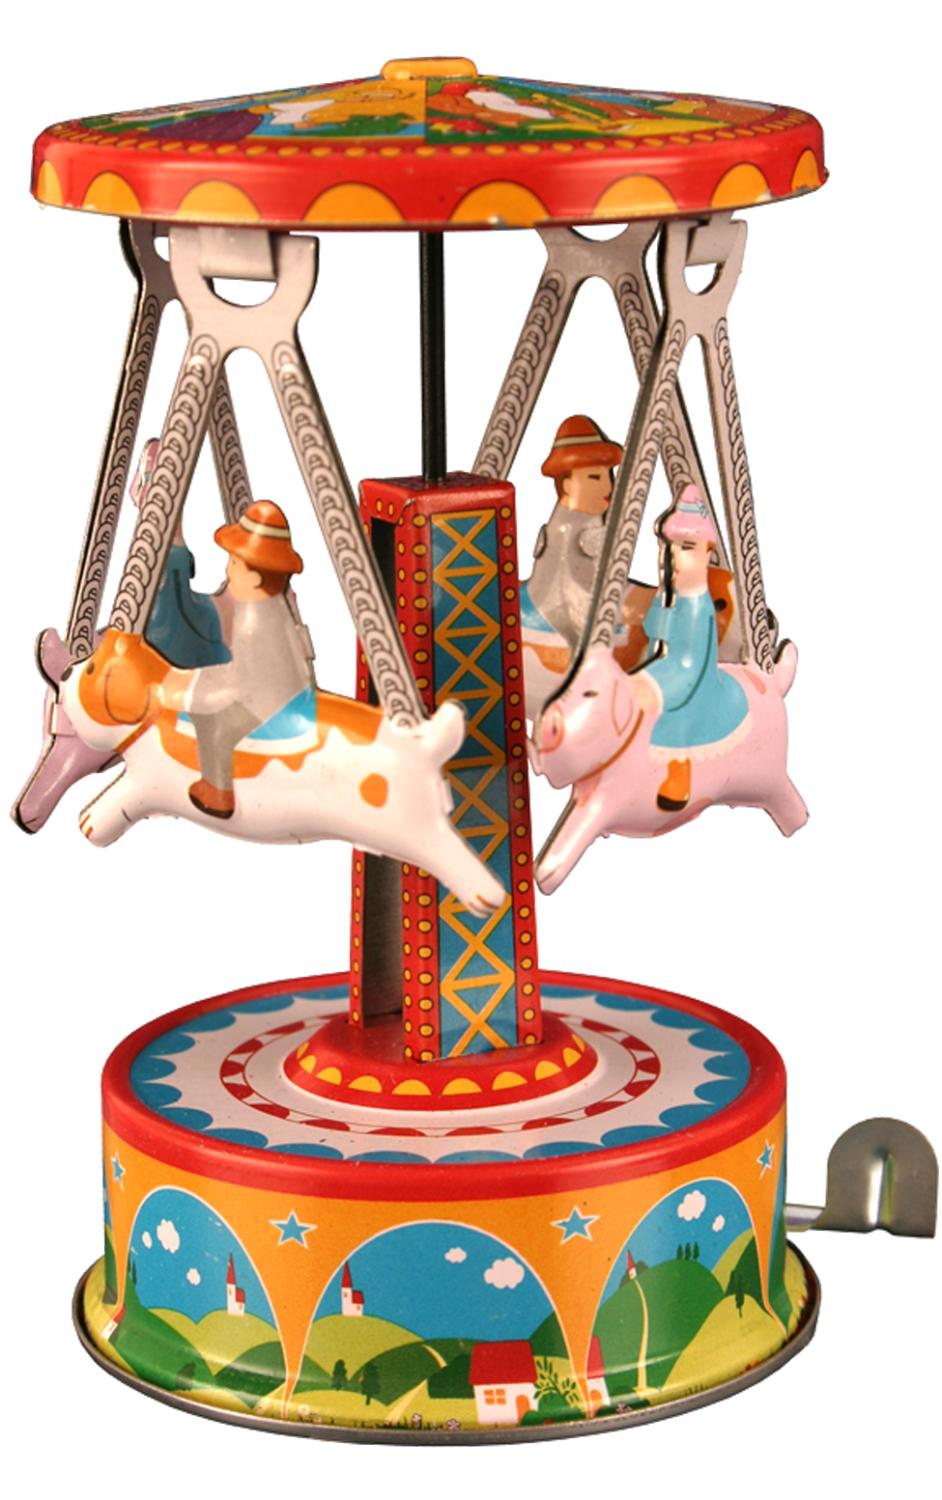 MF356 - Collectible Tin Toy - Carousel with Dogs - 4.5